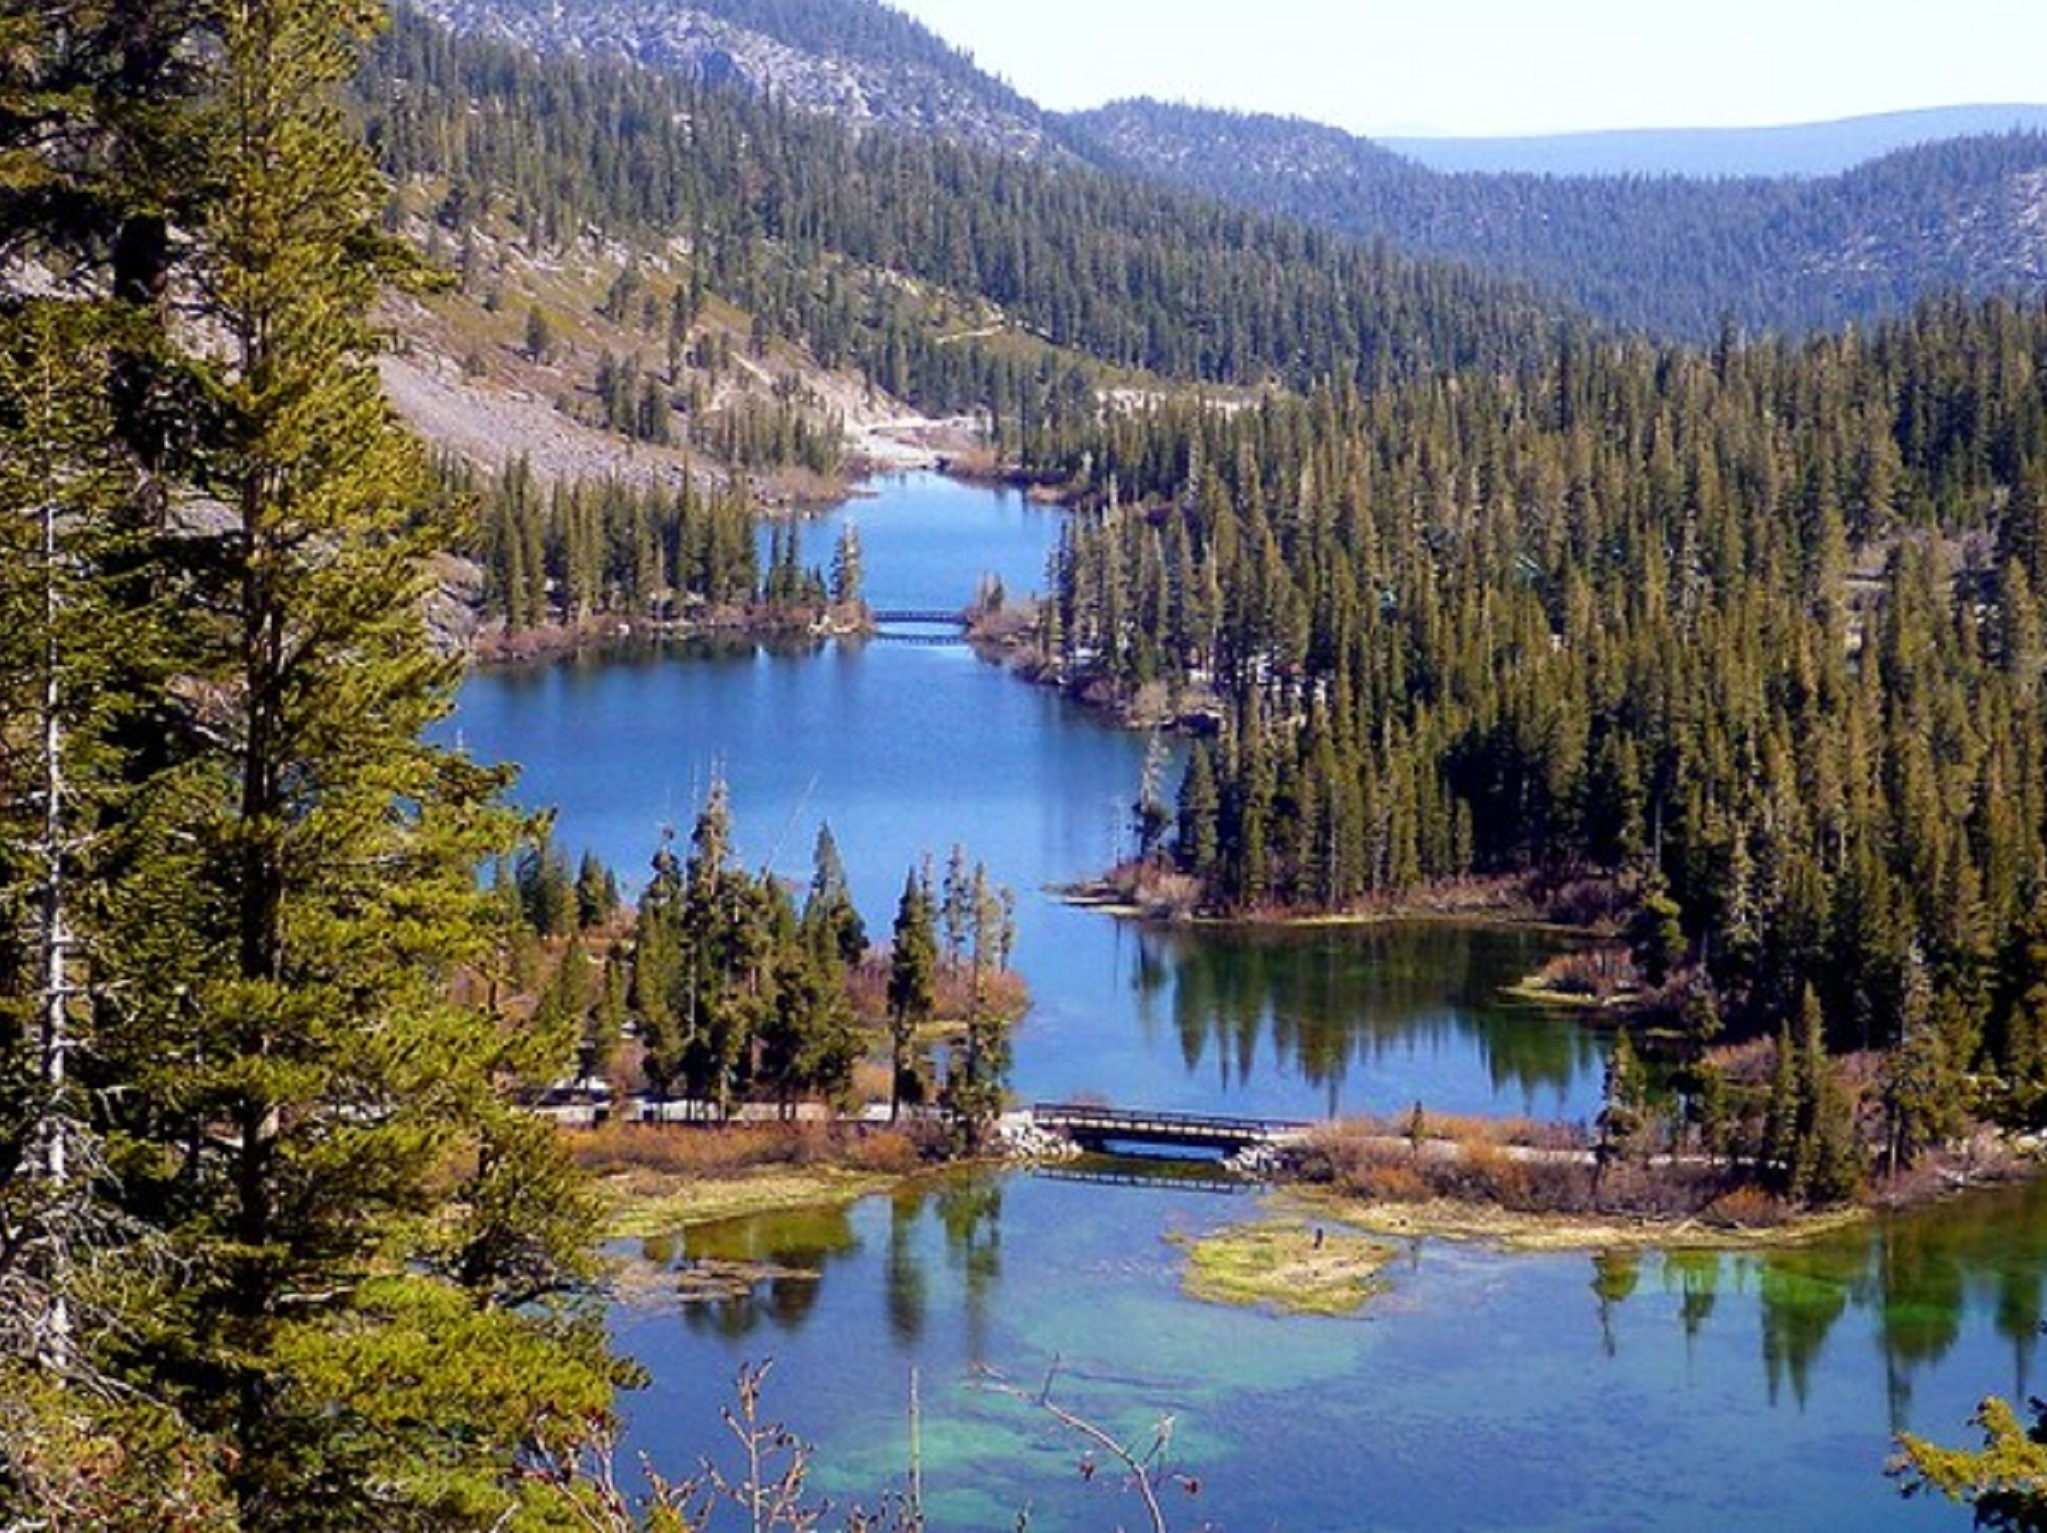 Alpine lakes surrounded by trees